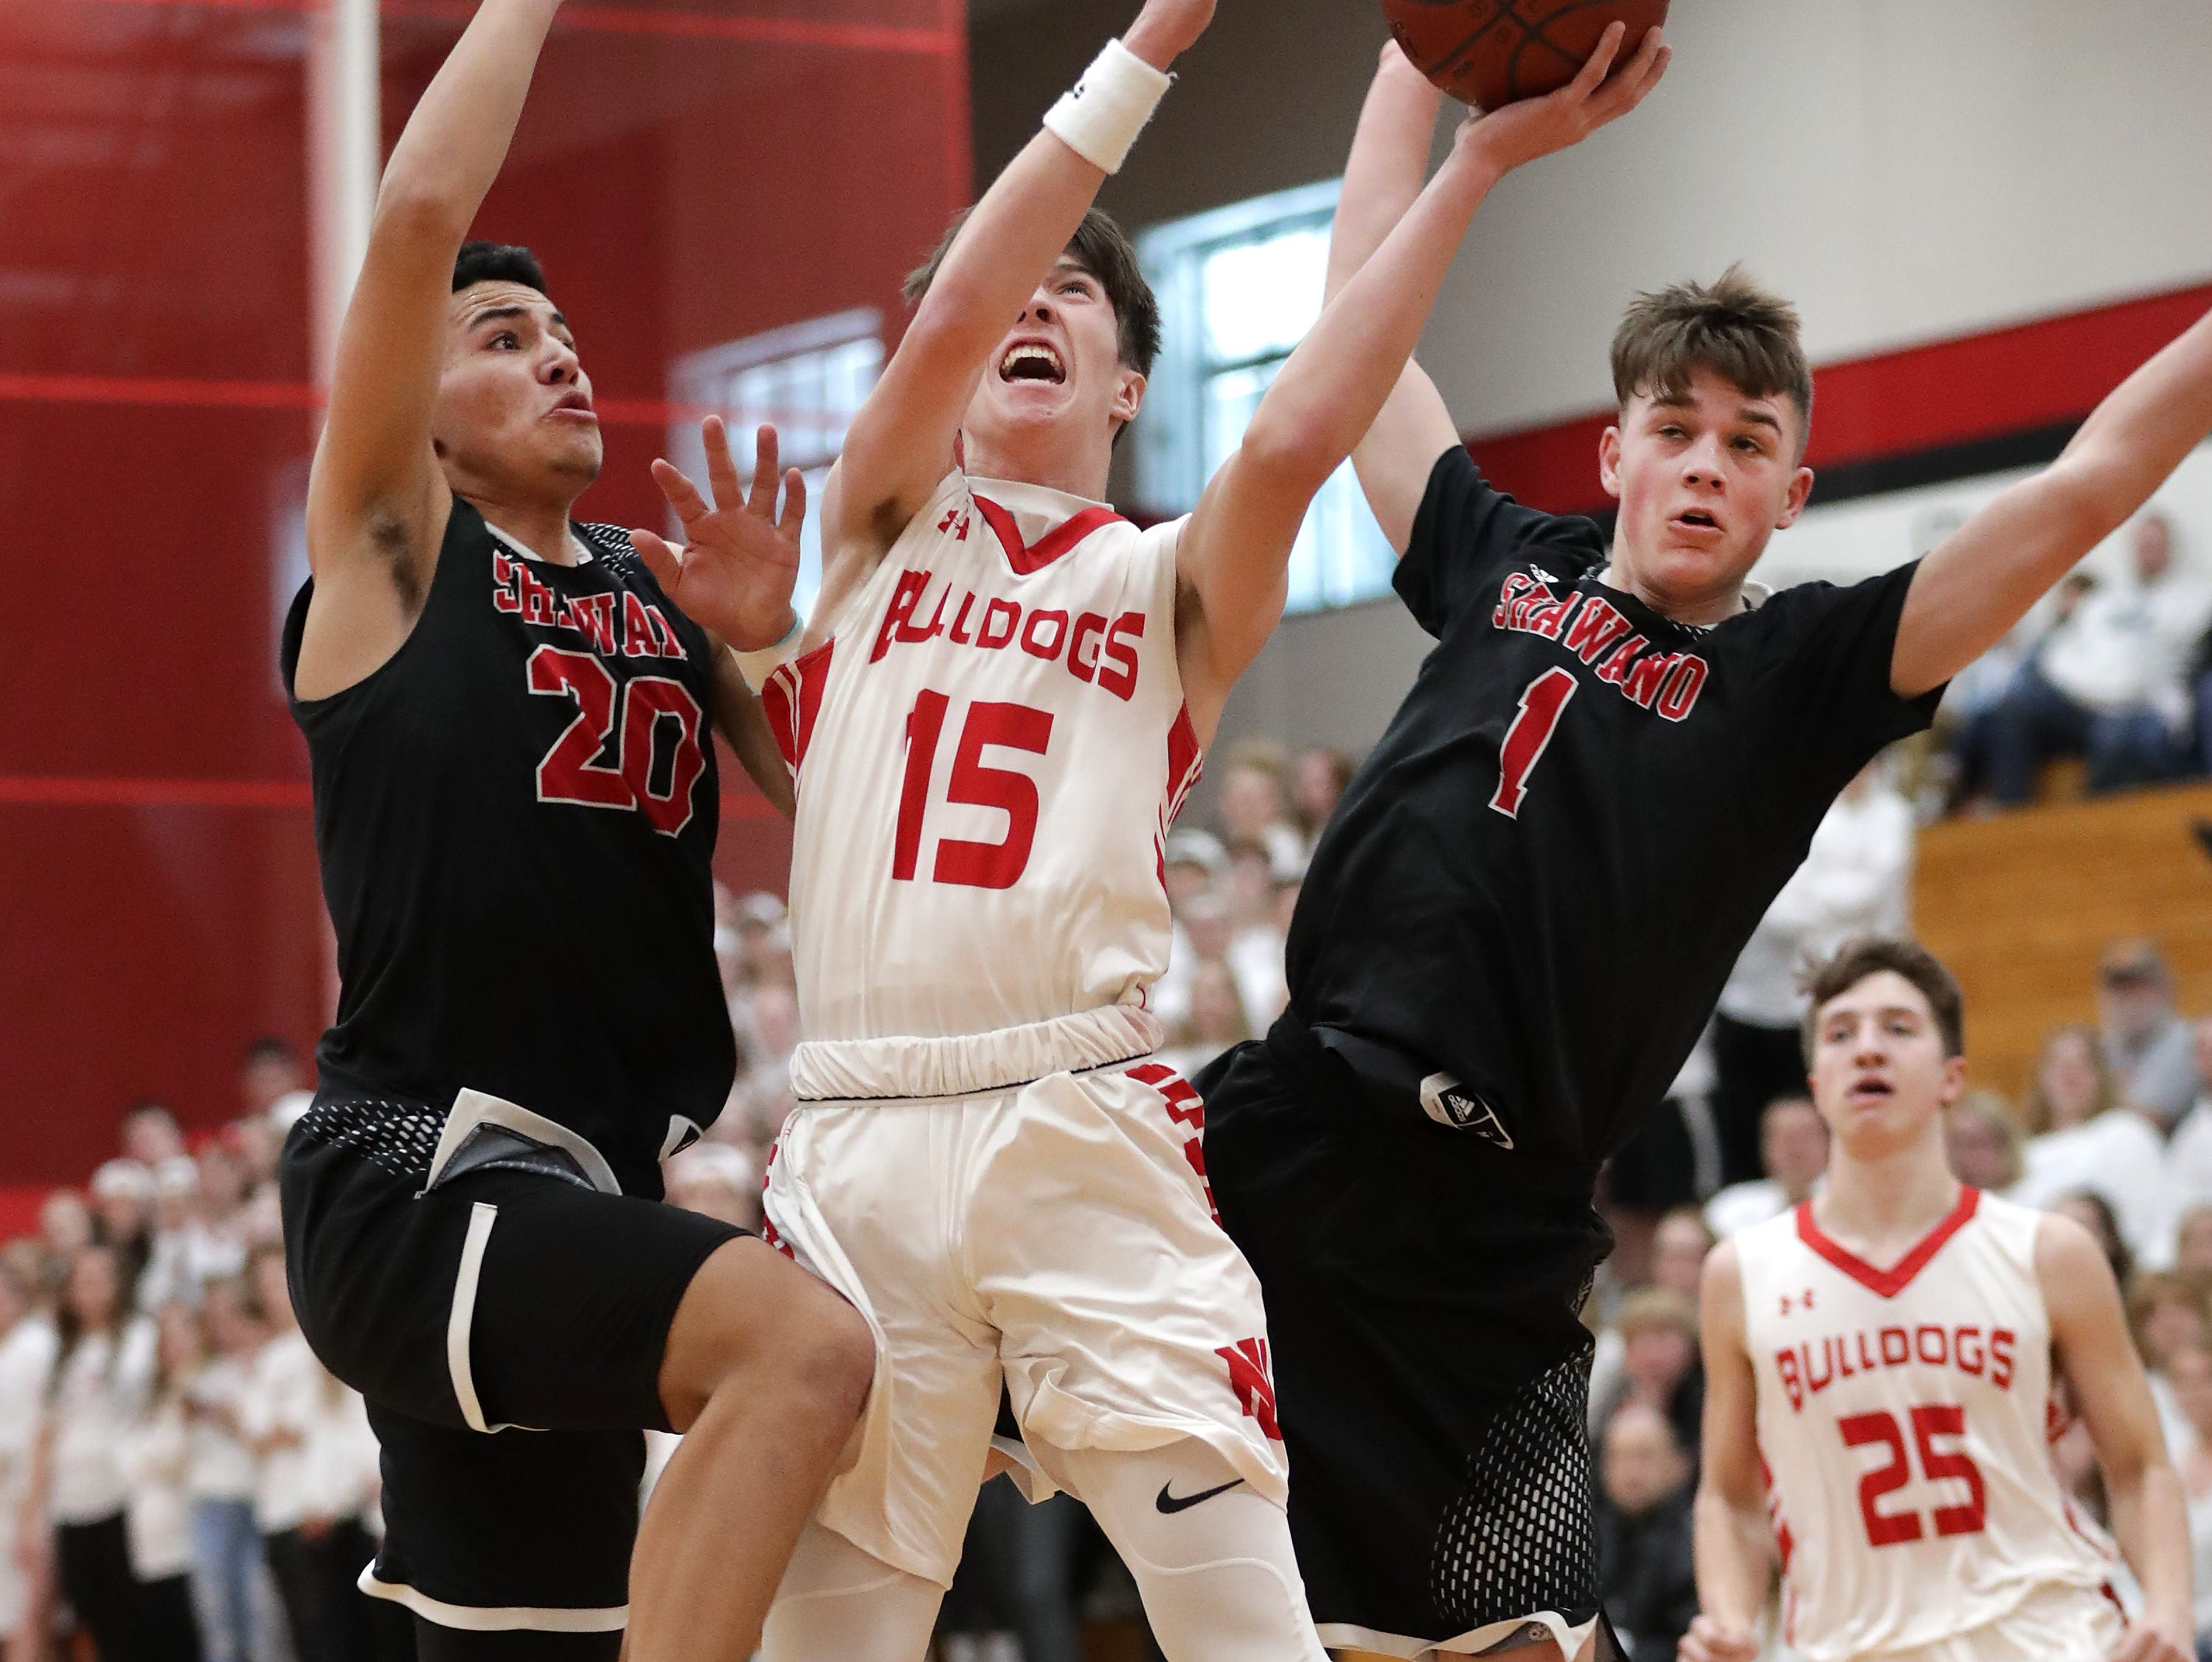 New London High School's #15 Connor Brinkman against Shawano High School on Saturday, February 15, 2019, in New London, Wis. It was the first game for New London since teammate Grant Madsen, from the town of Caledonia, was killed in a car accident on U.S. 45 in Waupaca County on Sunday, February 10, 2019.